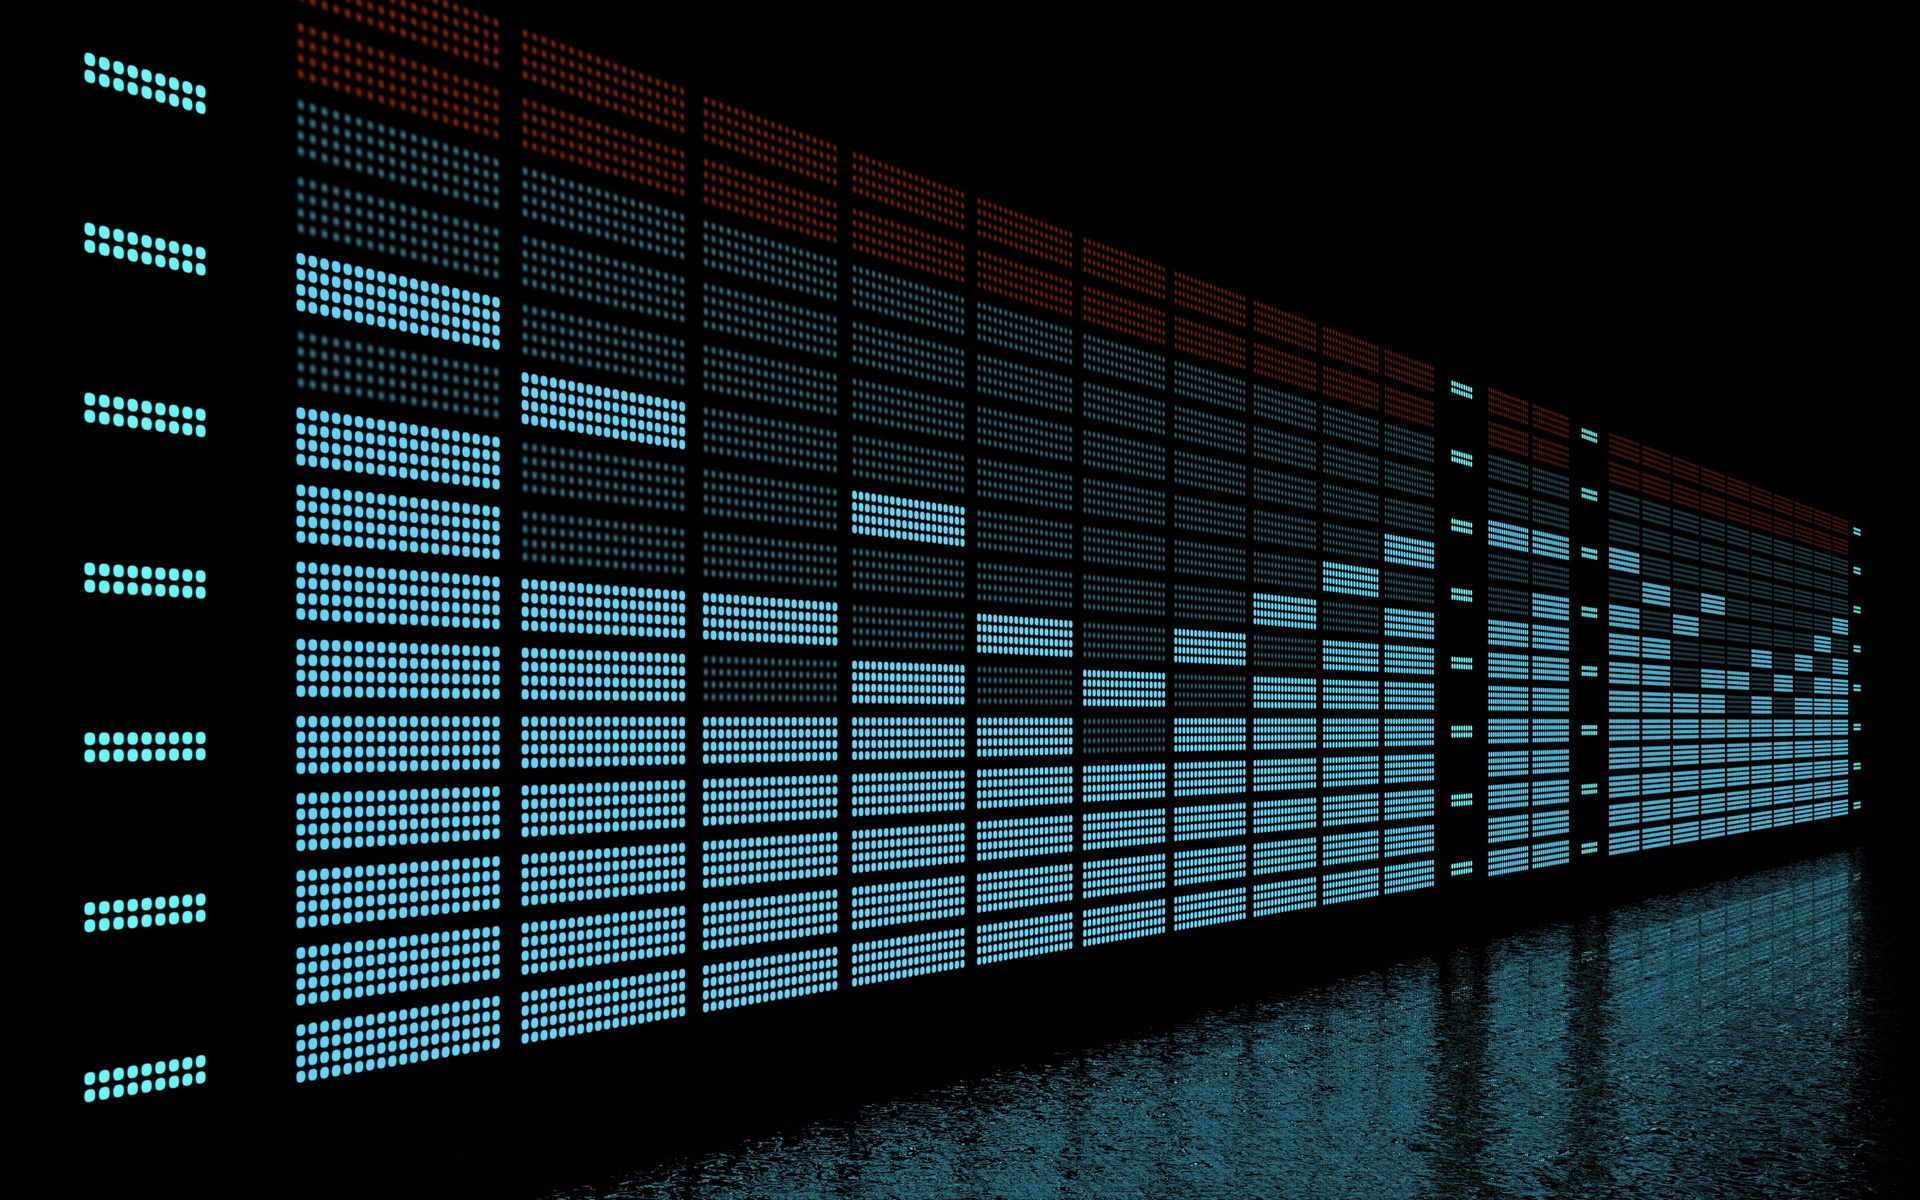 Download Free 3d Music Equalizer Wallpapers Hd: Live Equalizer Wallpaper